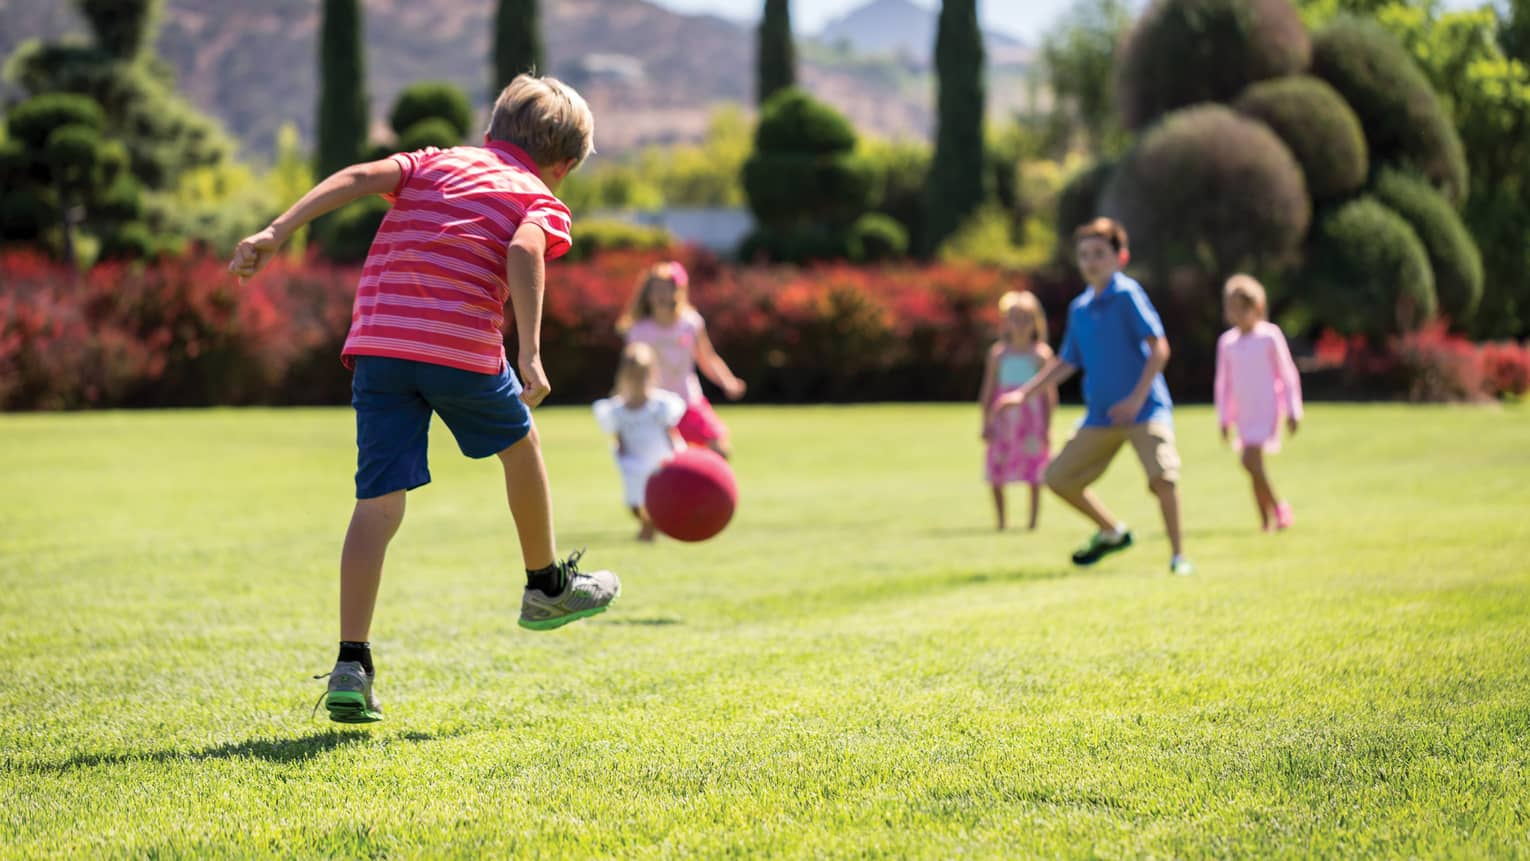 Kids playing with a ball on green grass outside.